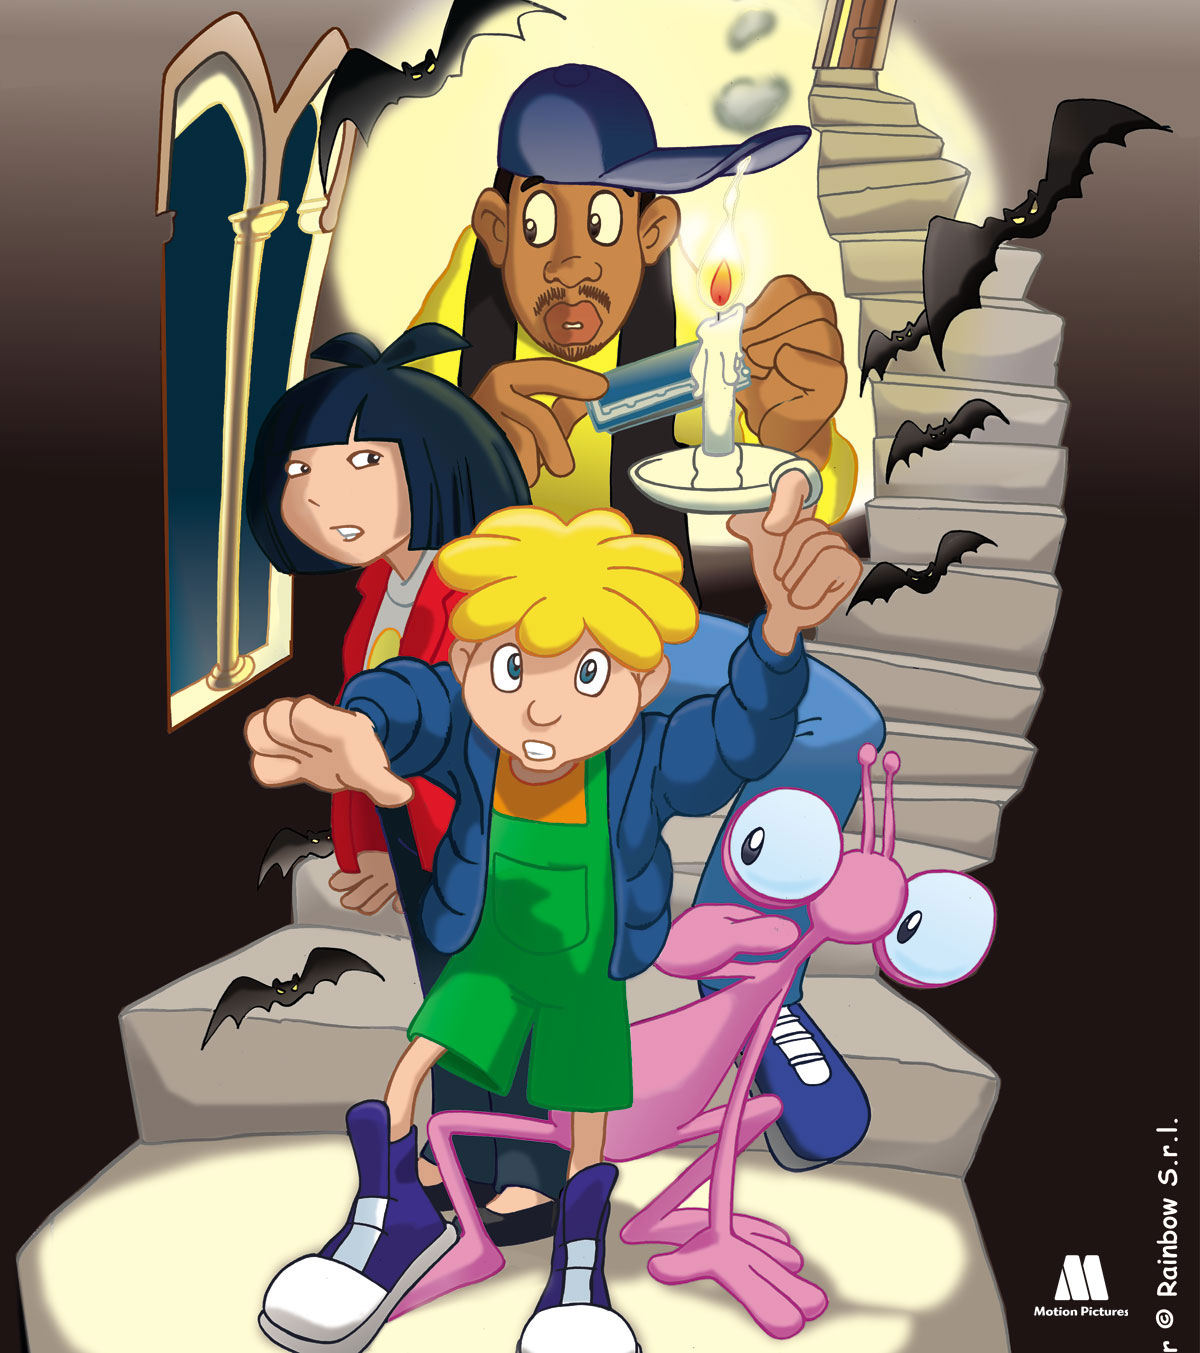 Castillo tenebroso, Tommy oscar, series animación para TV, kids animation Show aliens